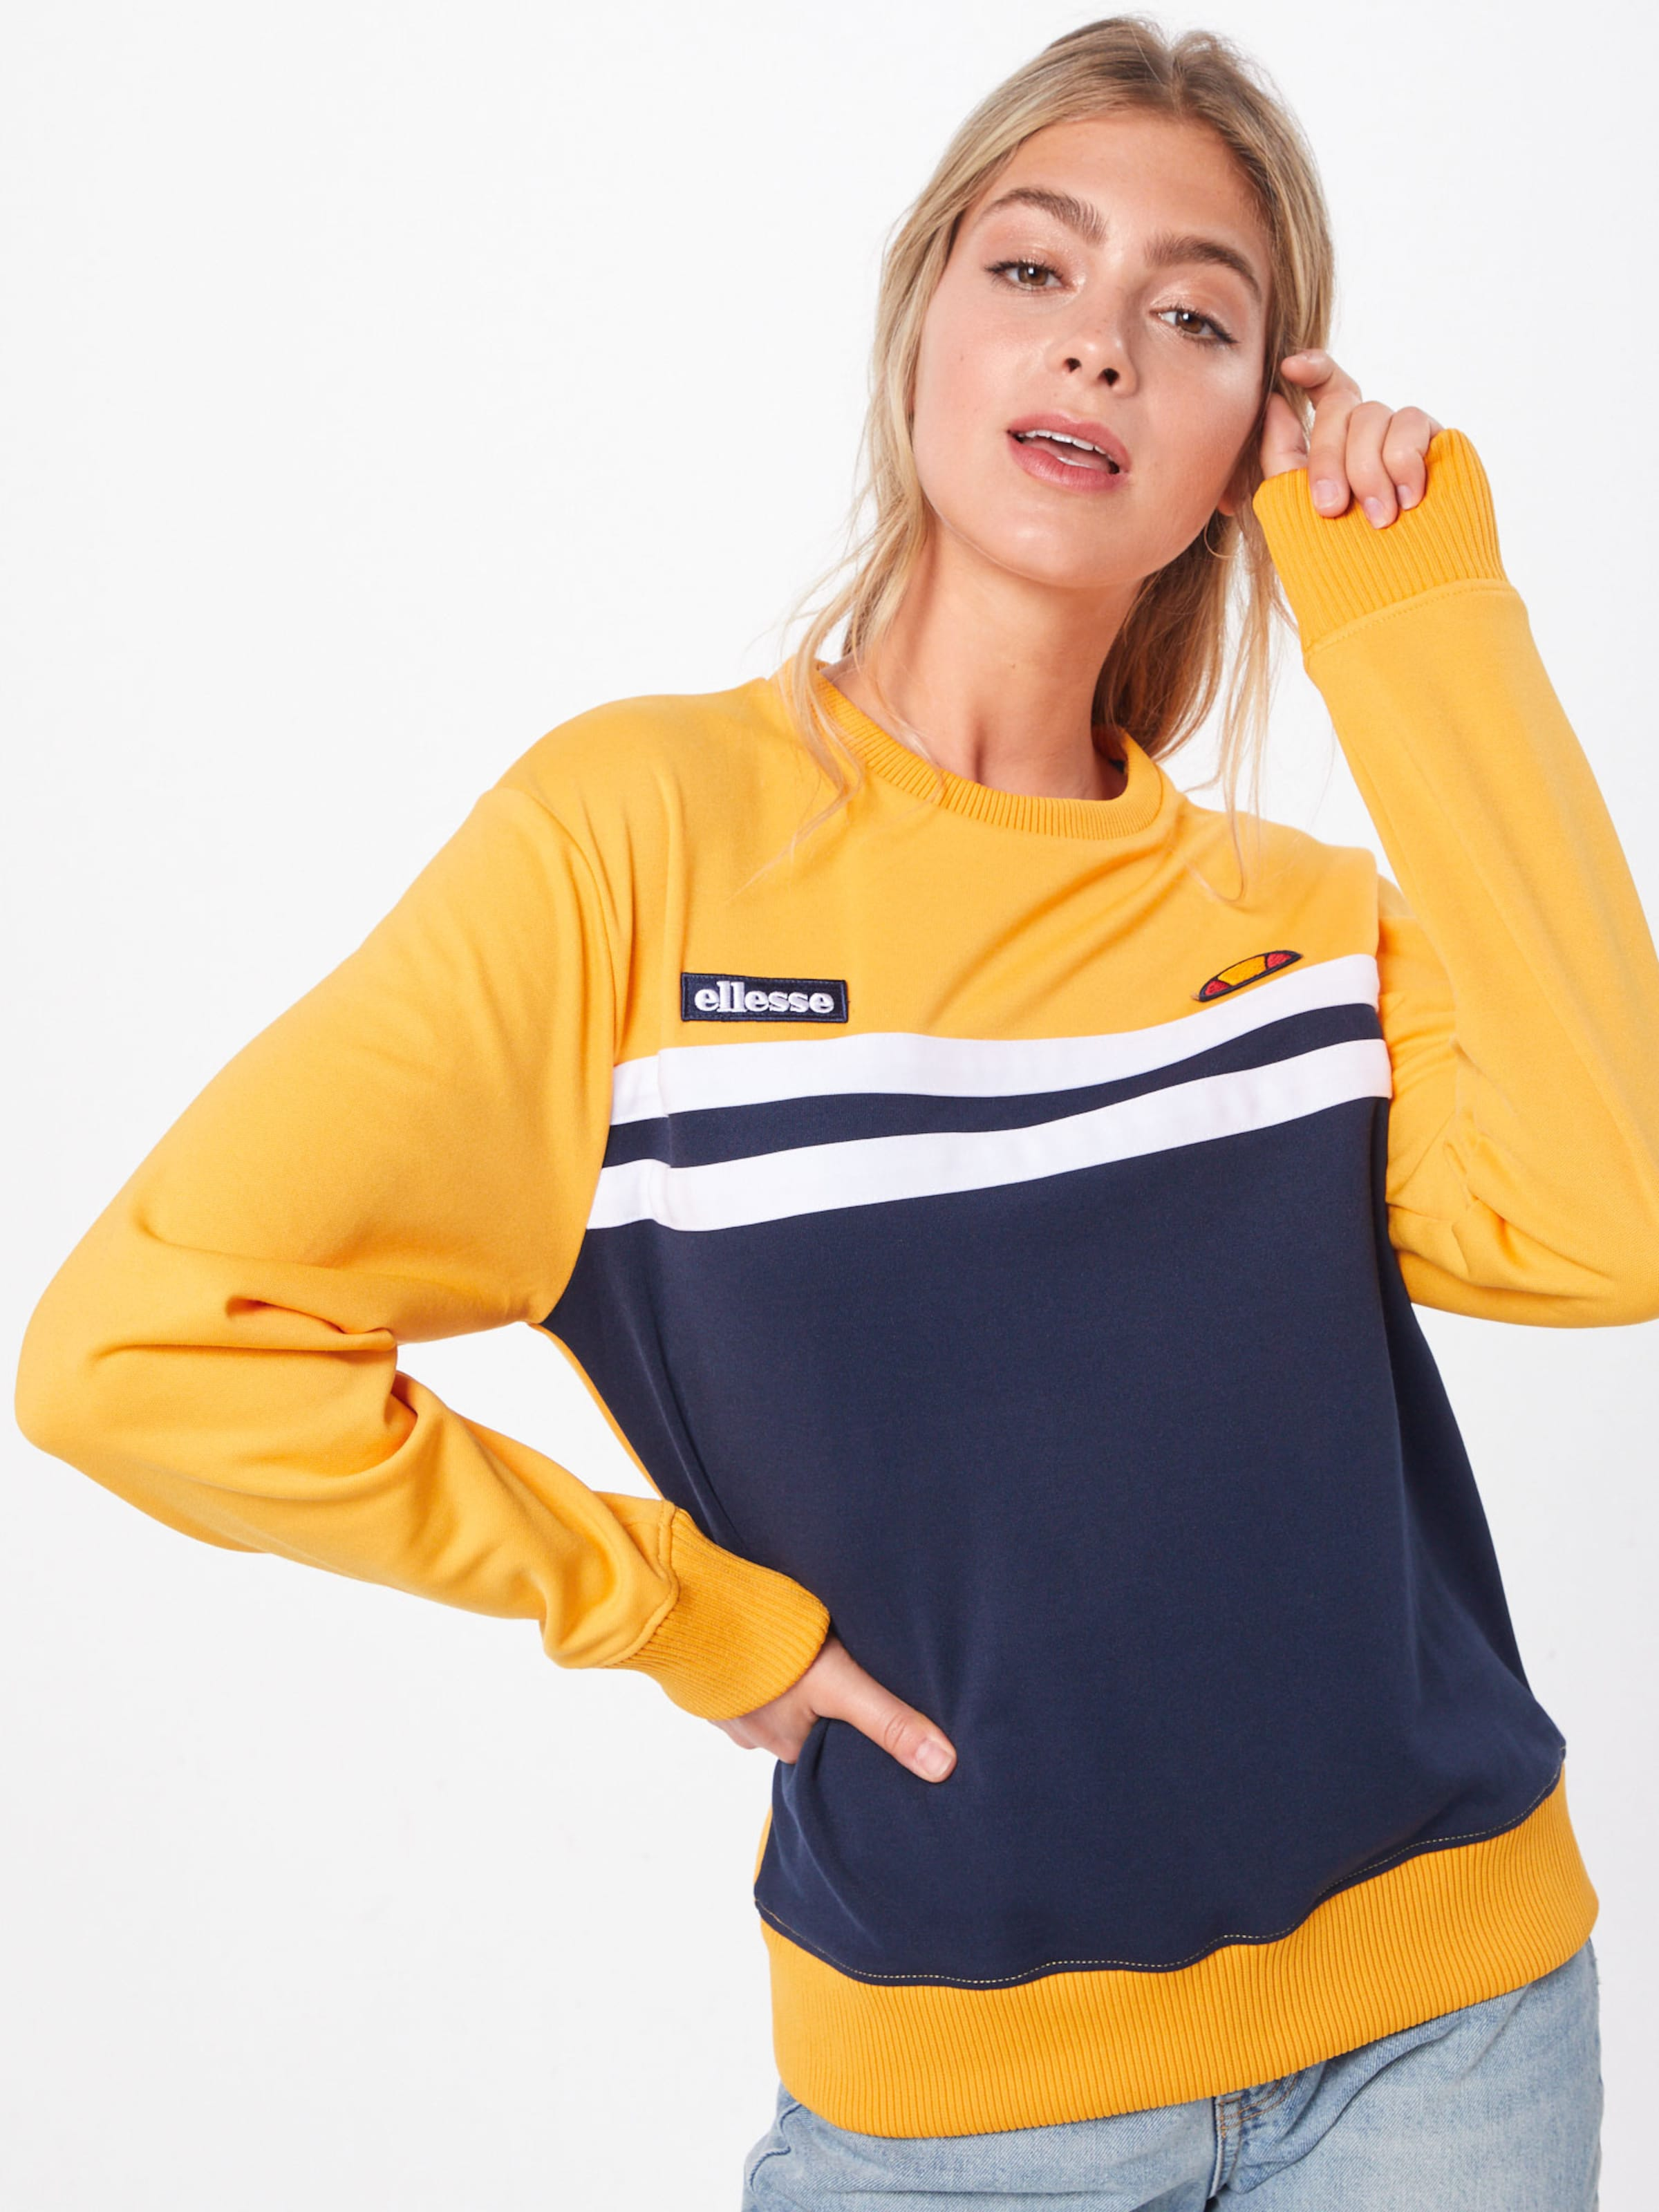 Ellesse Bleu En 'taria' Sweat shirt MarineBlanc lFTK1Jc